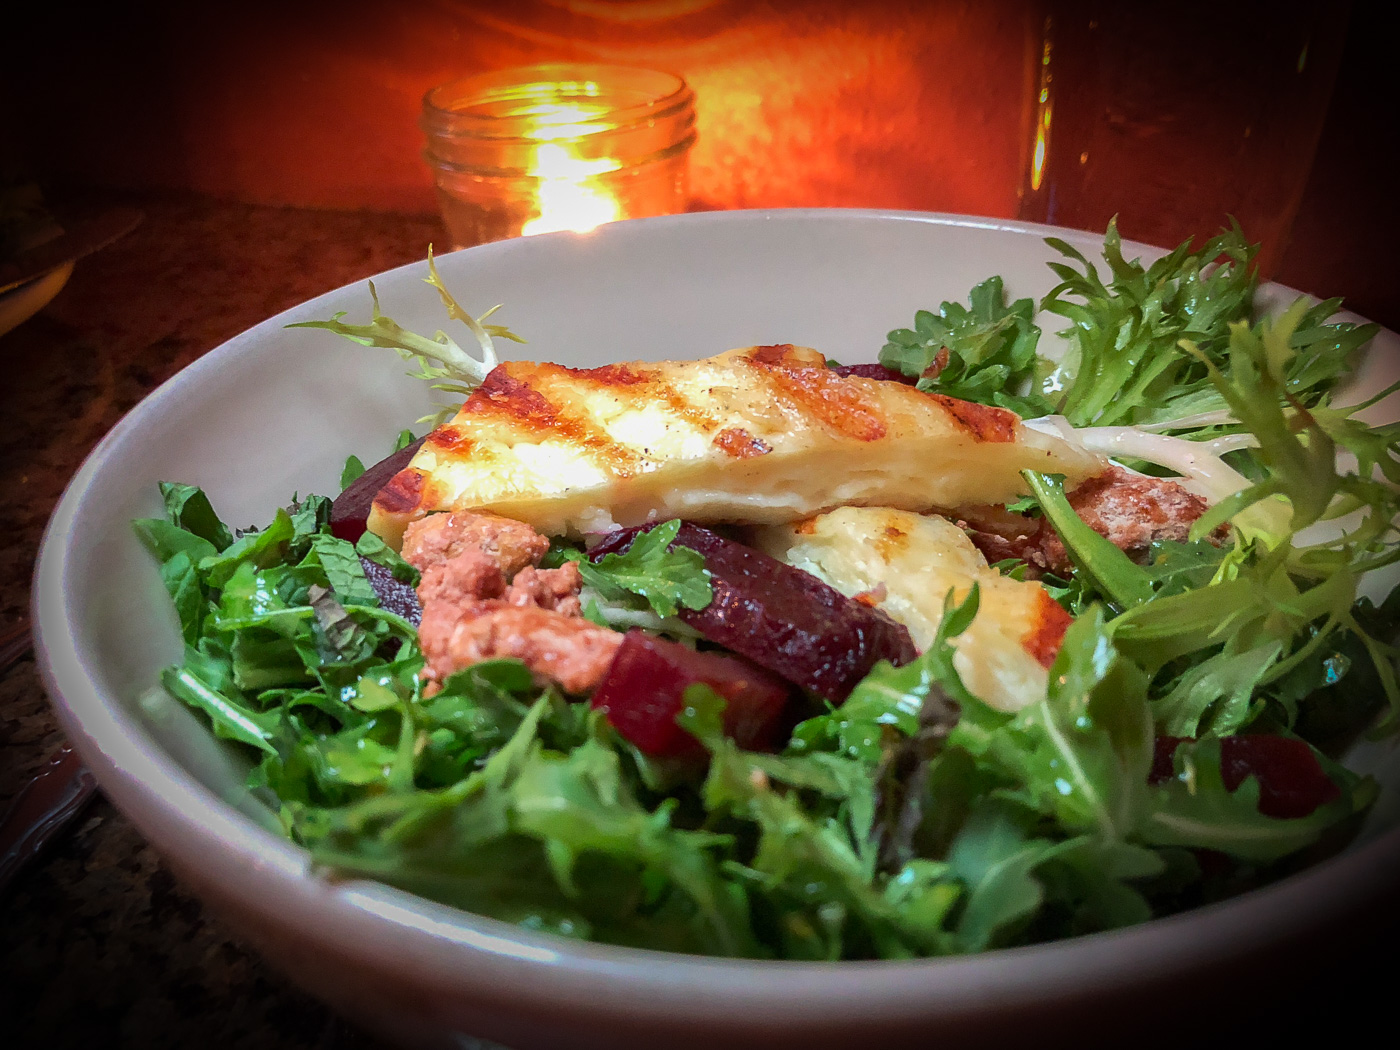 Bowl of salad with beets and grilled haloumi cheese